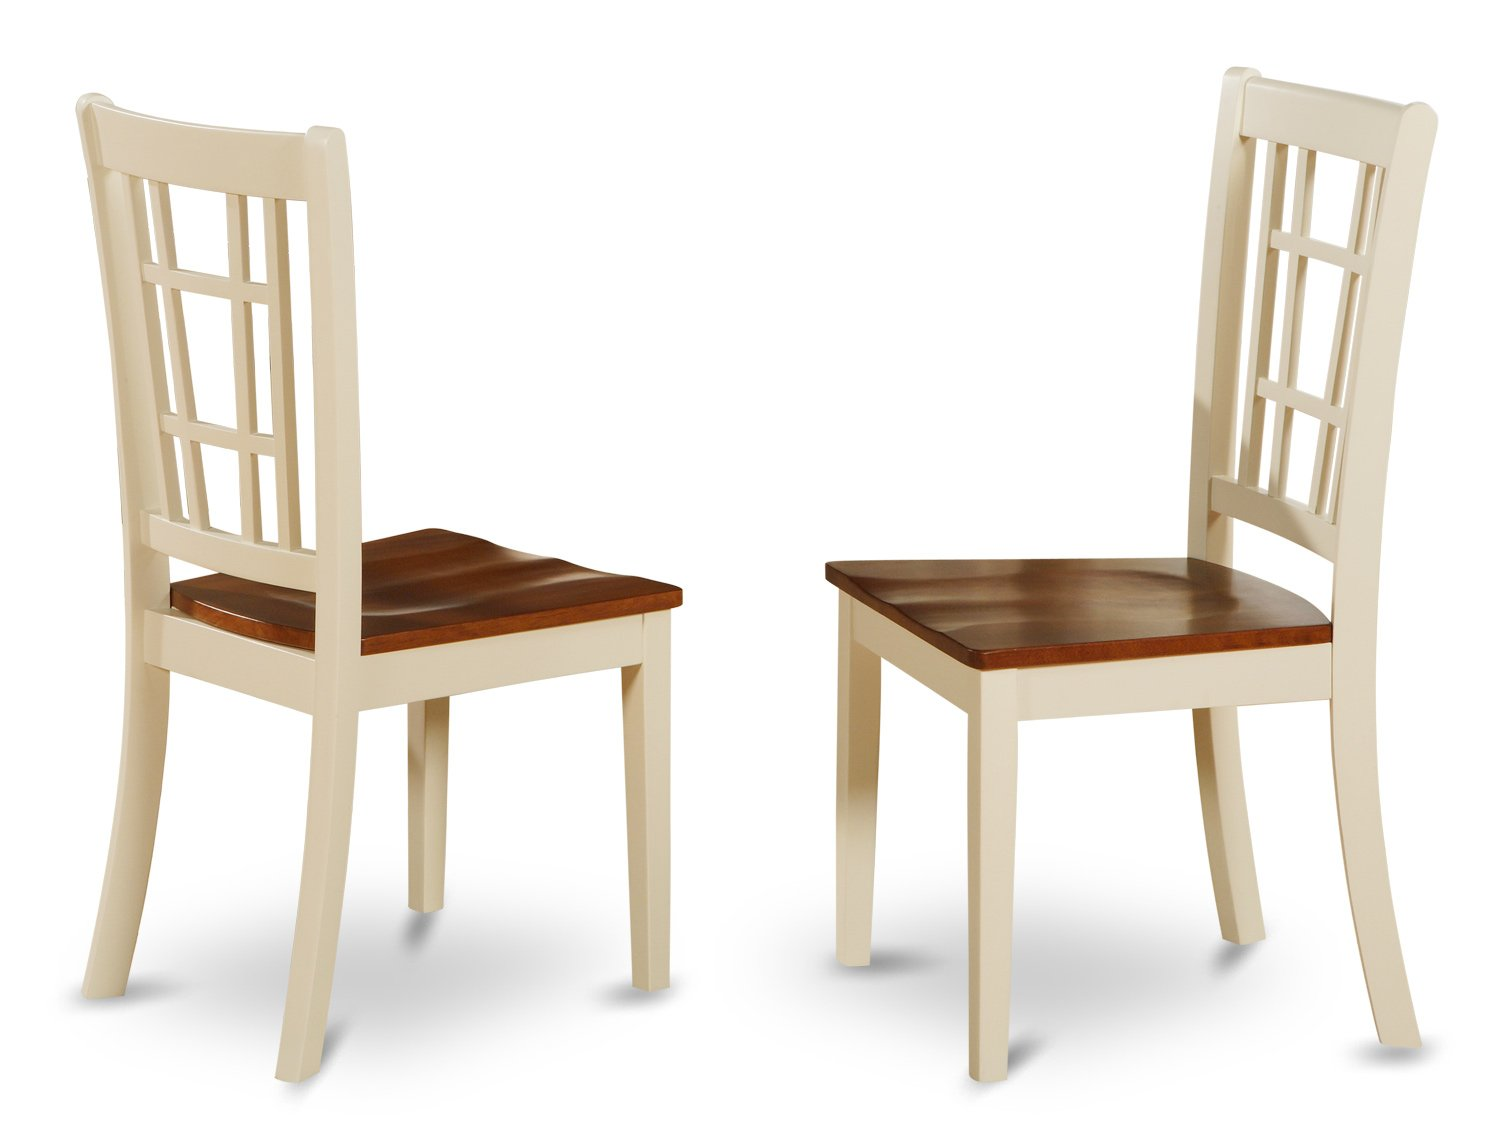 Set of 2 Nicoli  dining room chairs in Buttermilk white finish.